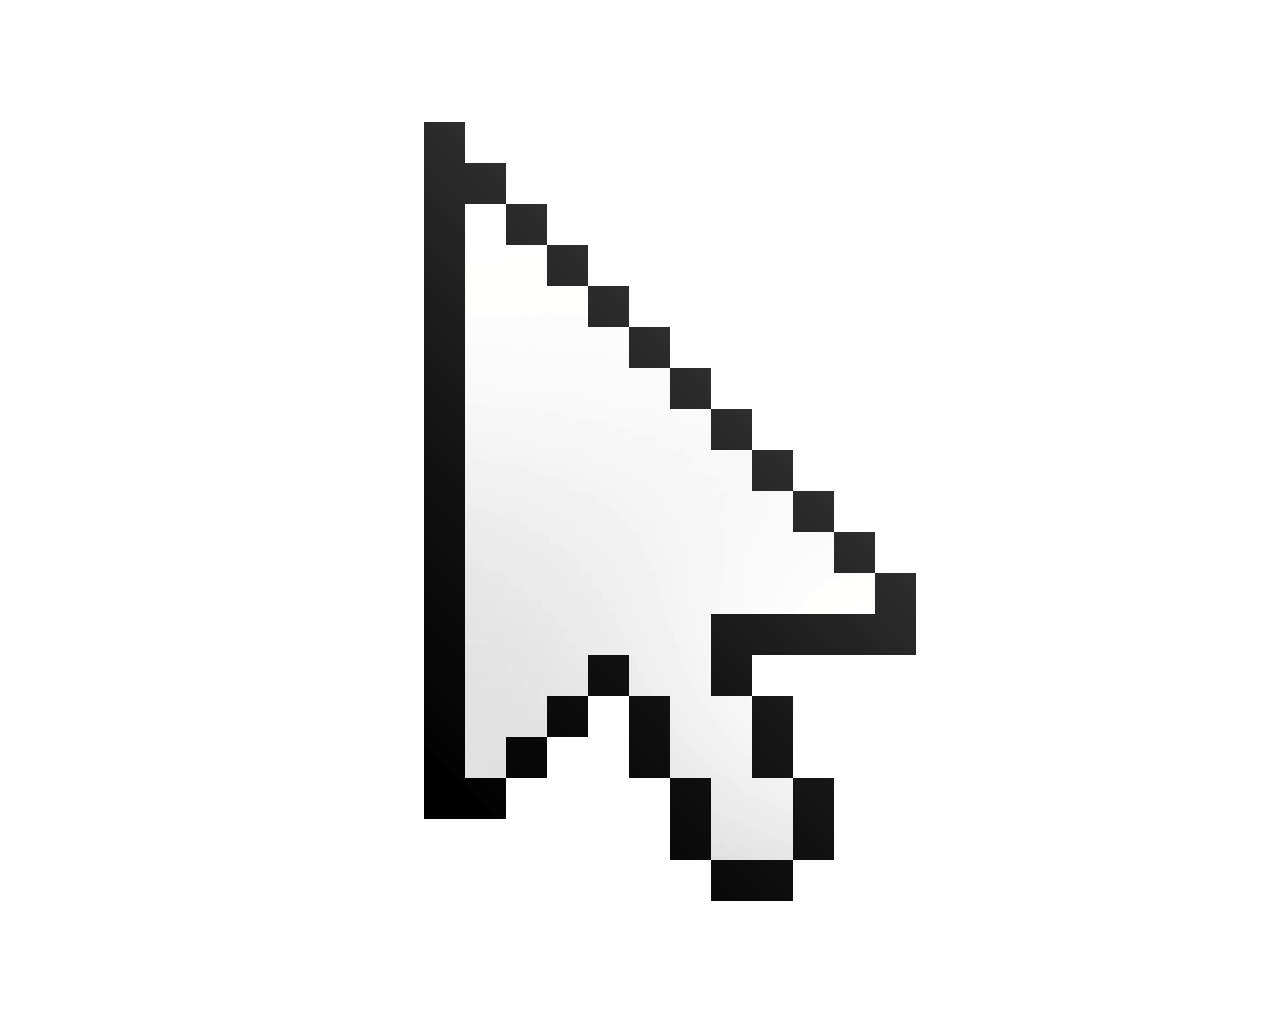 Mouse cursor icon